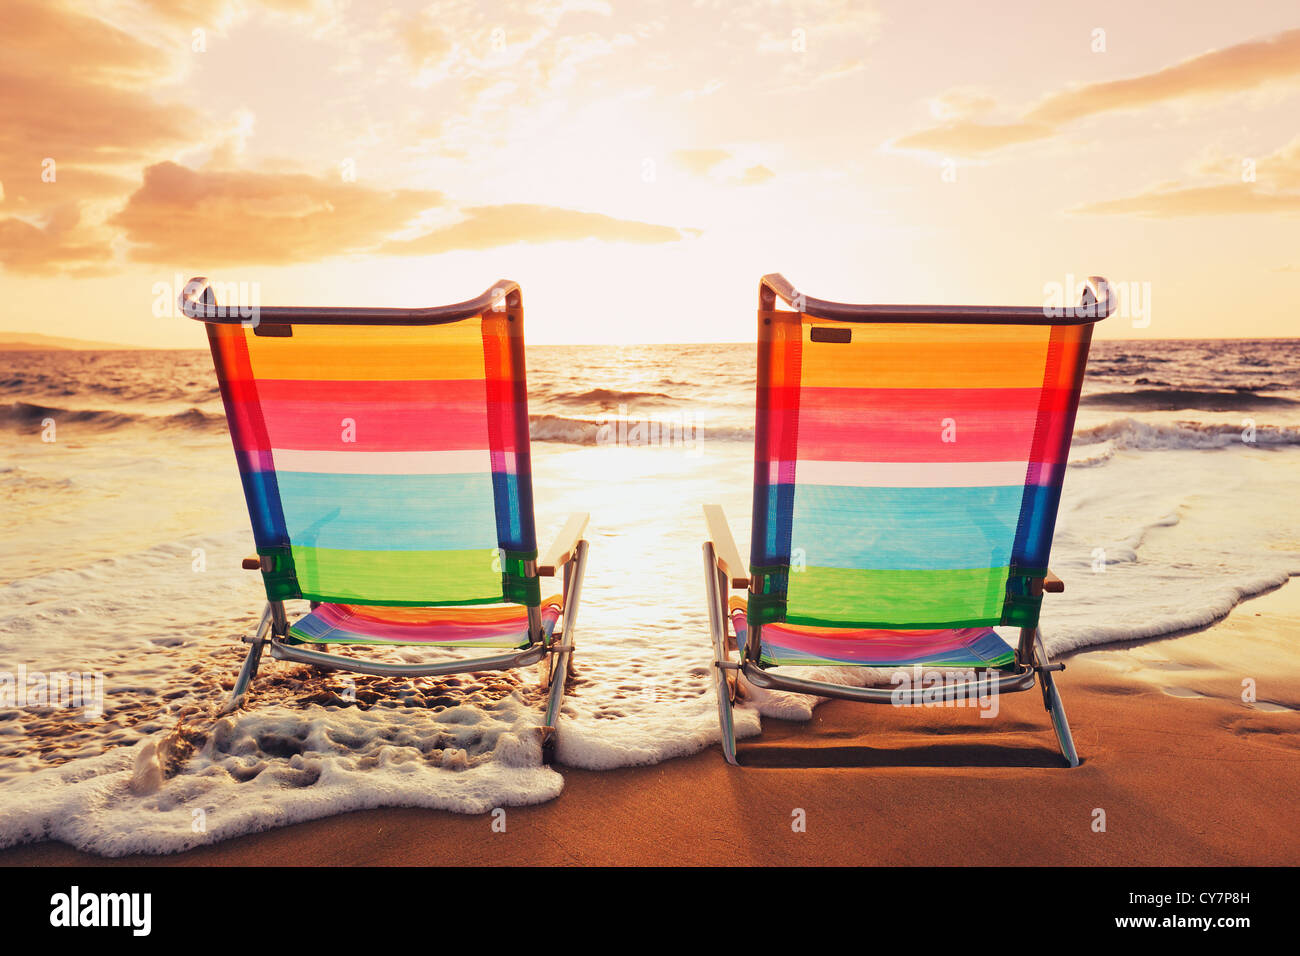 Hawaiian Vacation Sunset Concept Two Beach Chairs at Sunset Stock